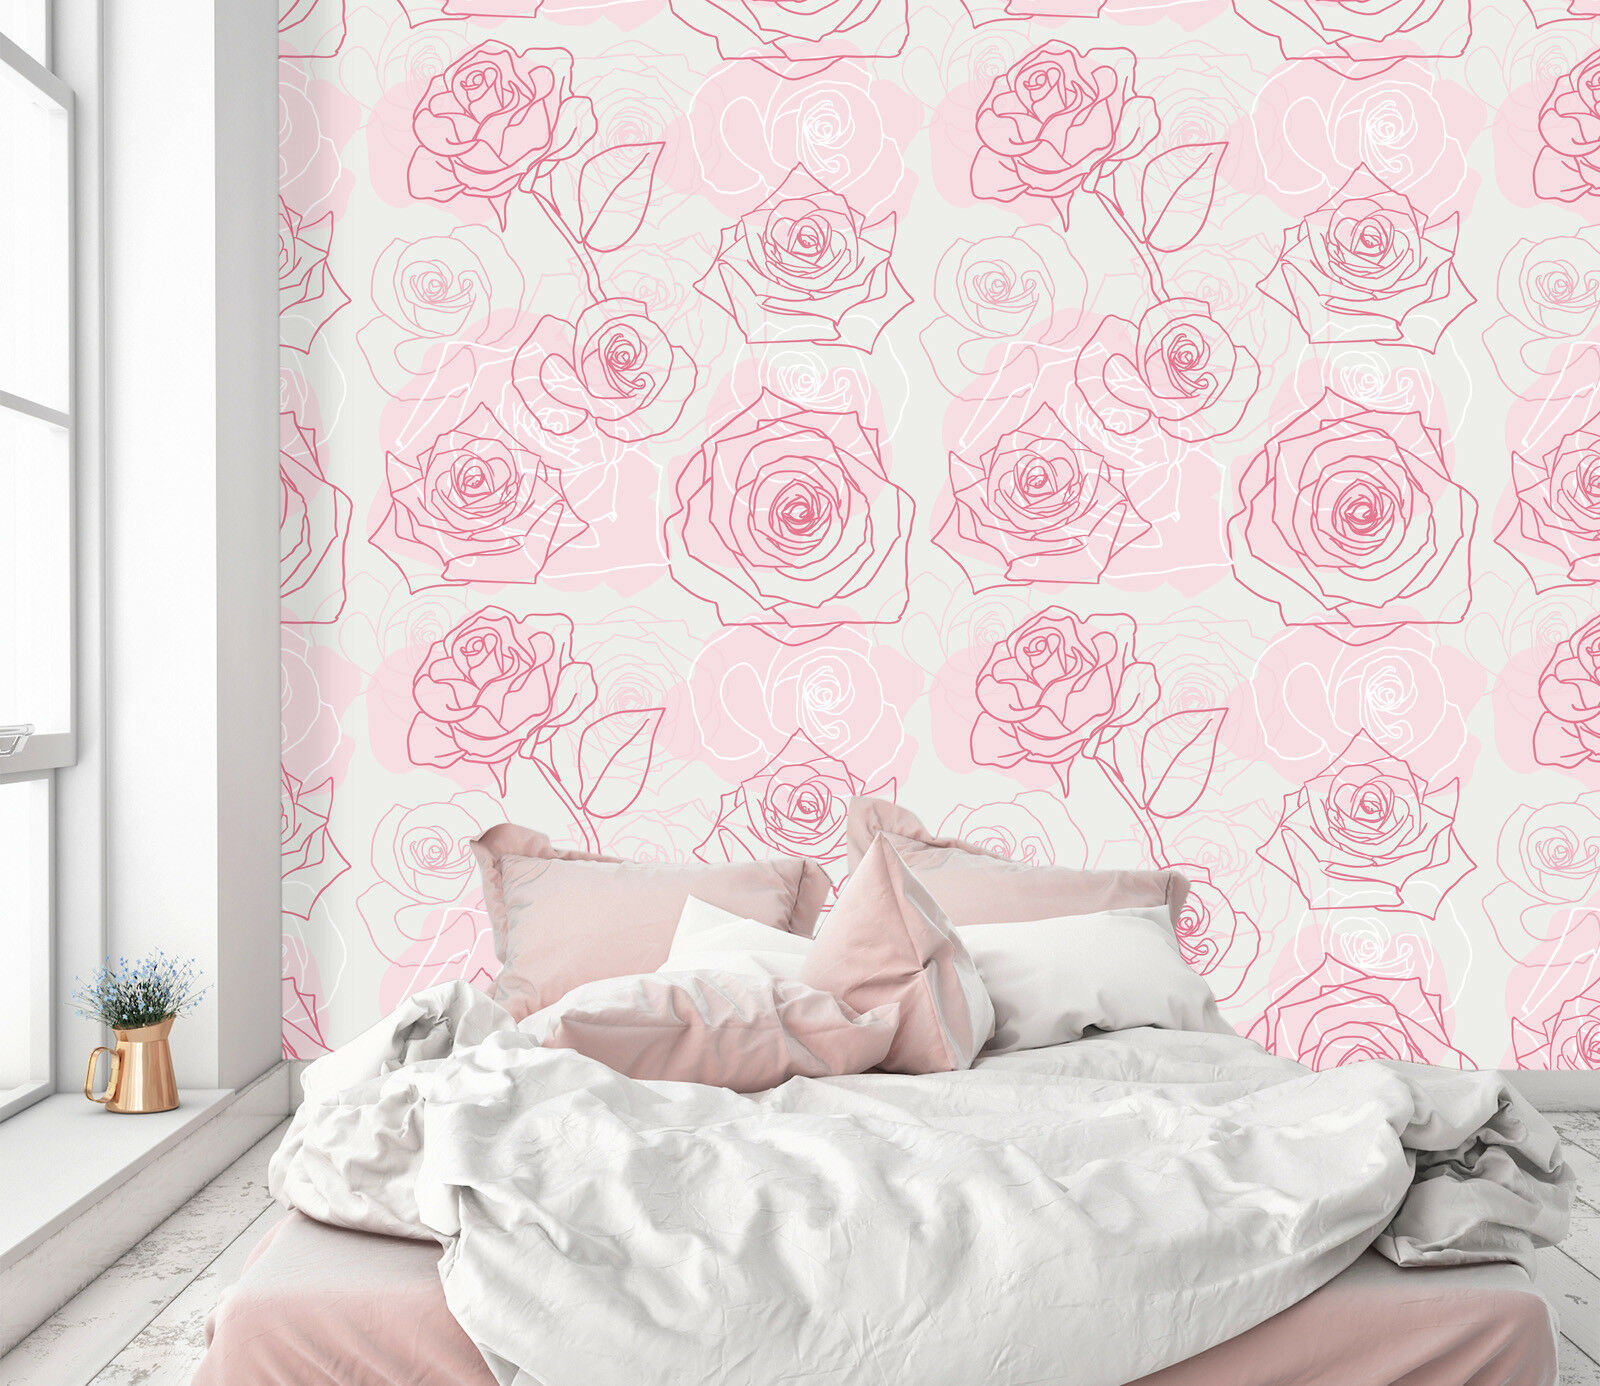 3D Abstract Pink pinks 3 Wallpaper Mural Wall Print Decal Indoor Murals AU Lemon